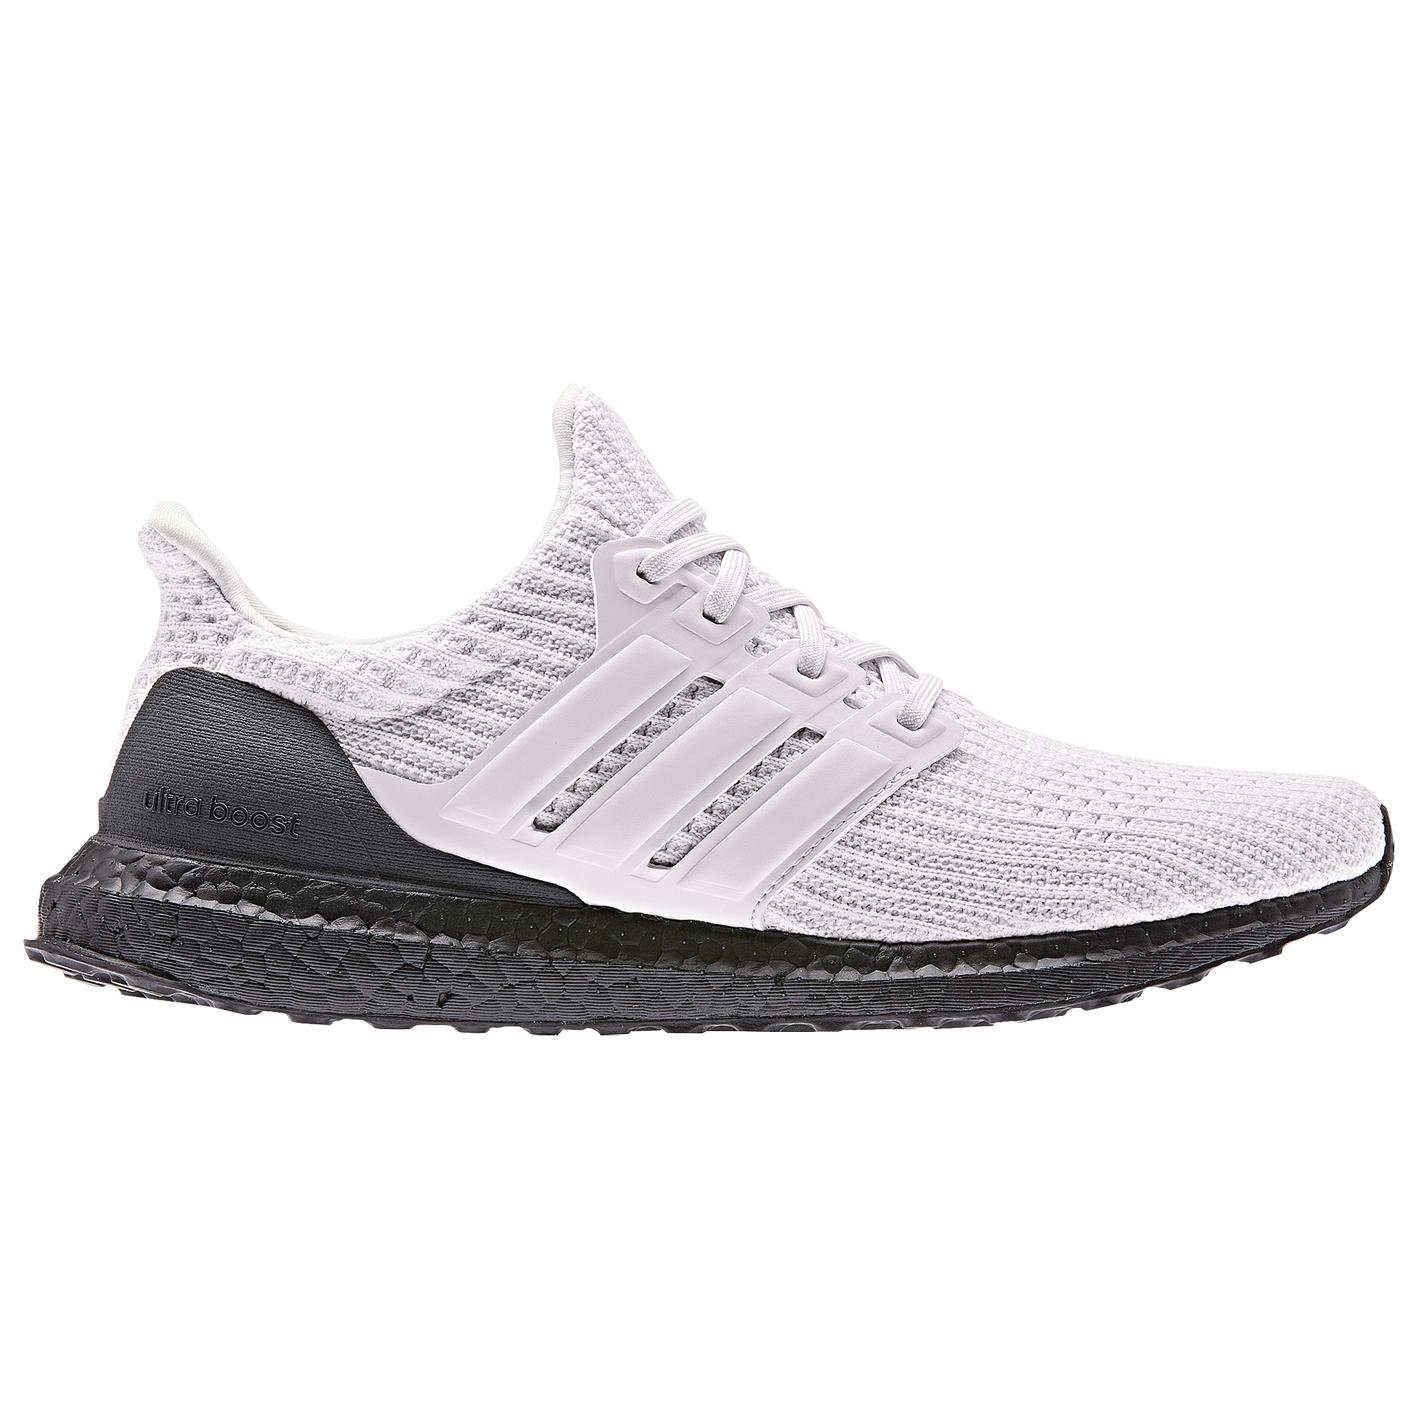 7da123d118ce0 adidas Ultraboost - Men s - Running - Shoes - White Orchid Tint Black